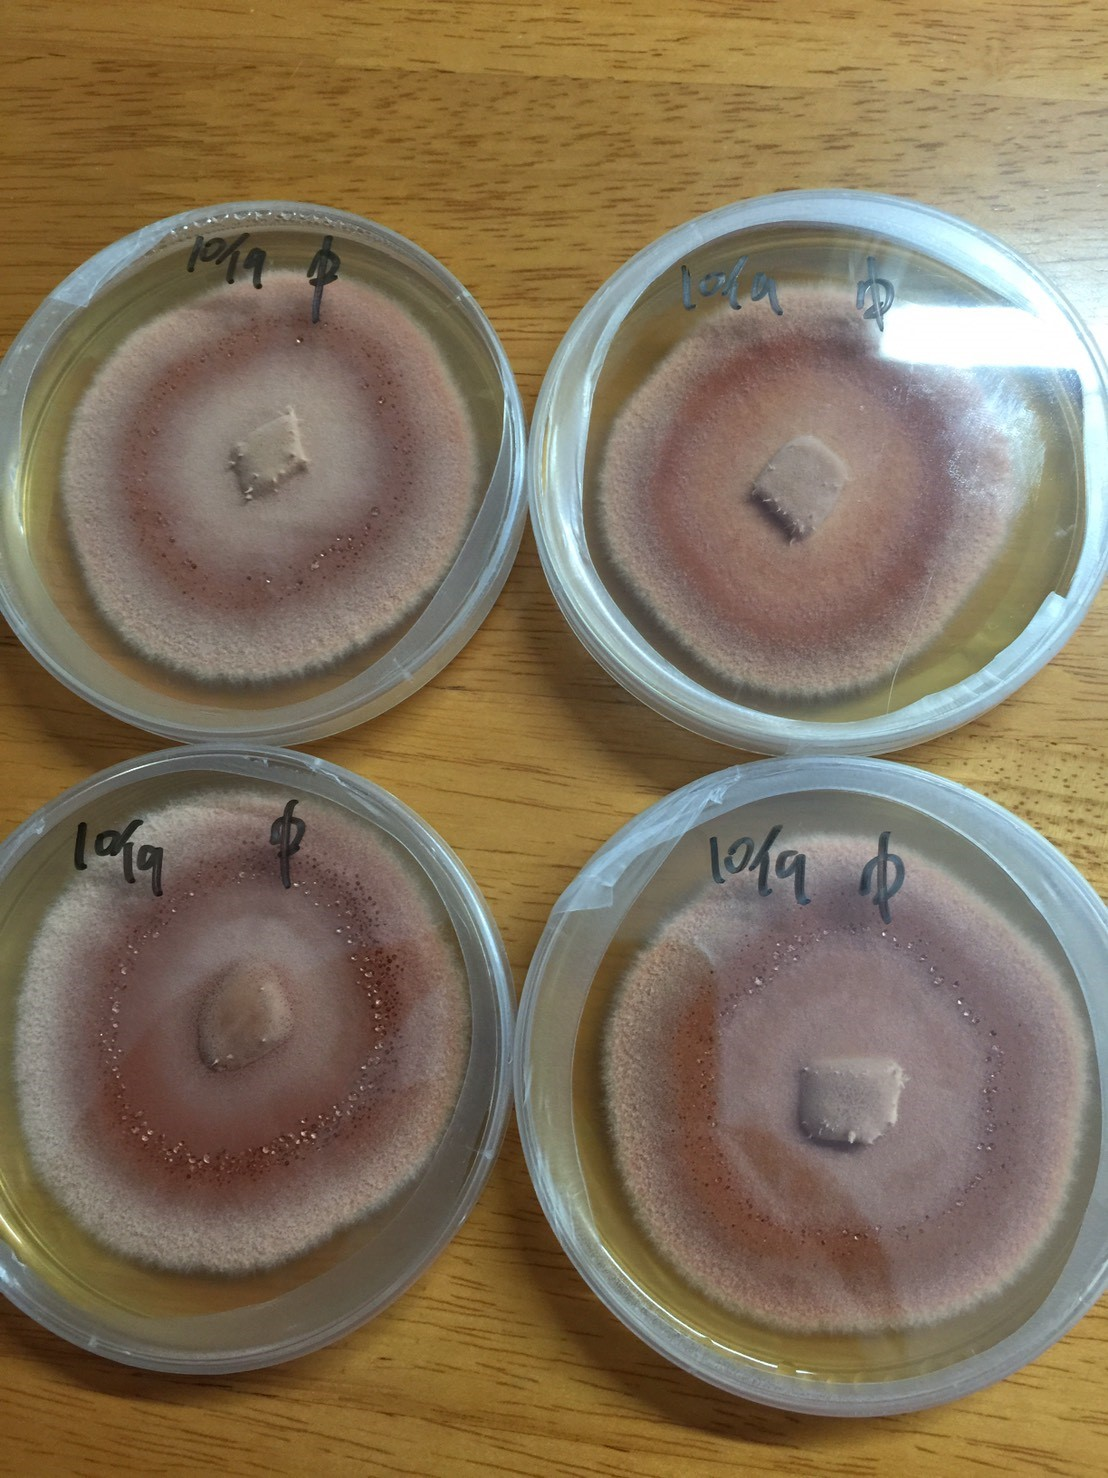 Niu Zhang Mushroom growth on agar plate. (Image courtesy of 3i Agricultural BioTech Group)